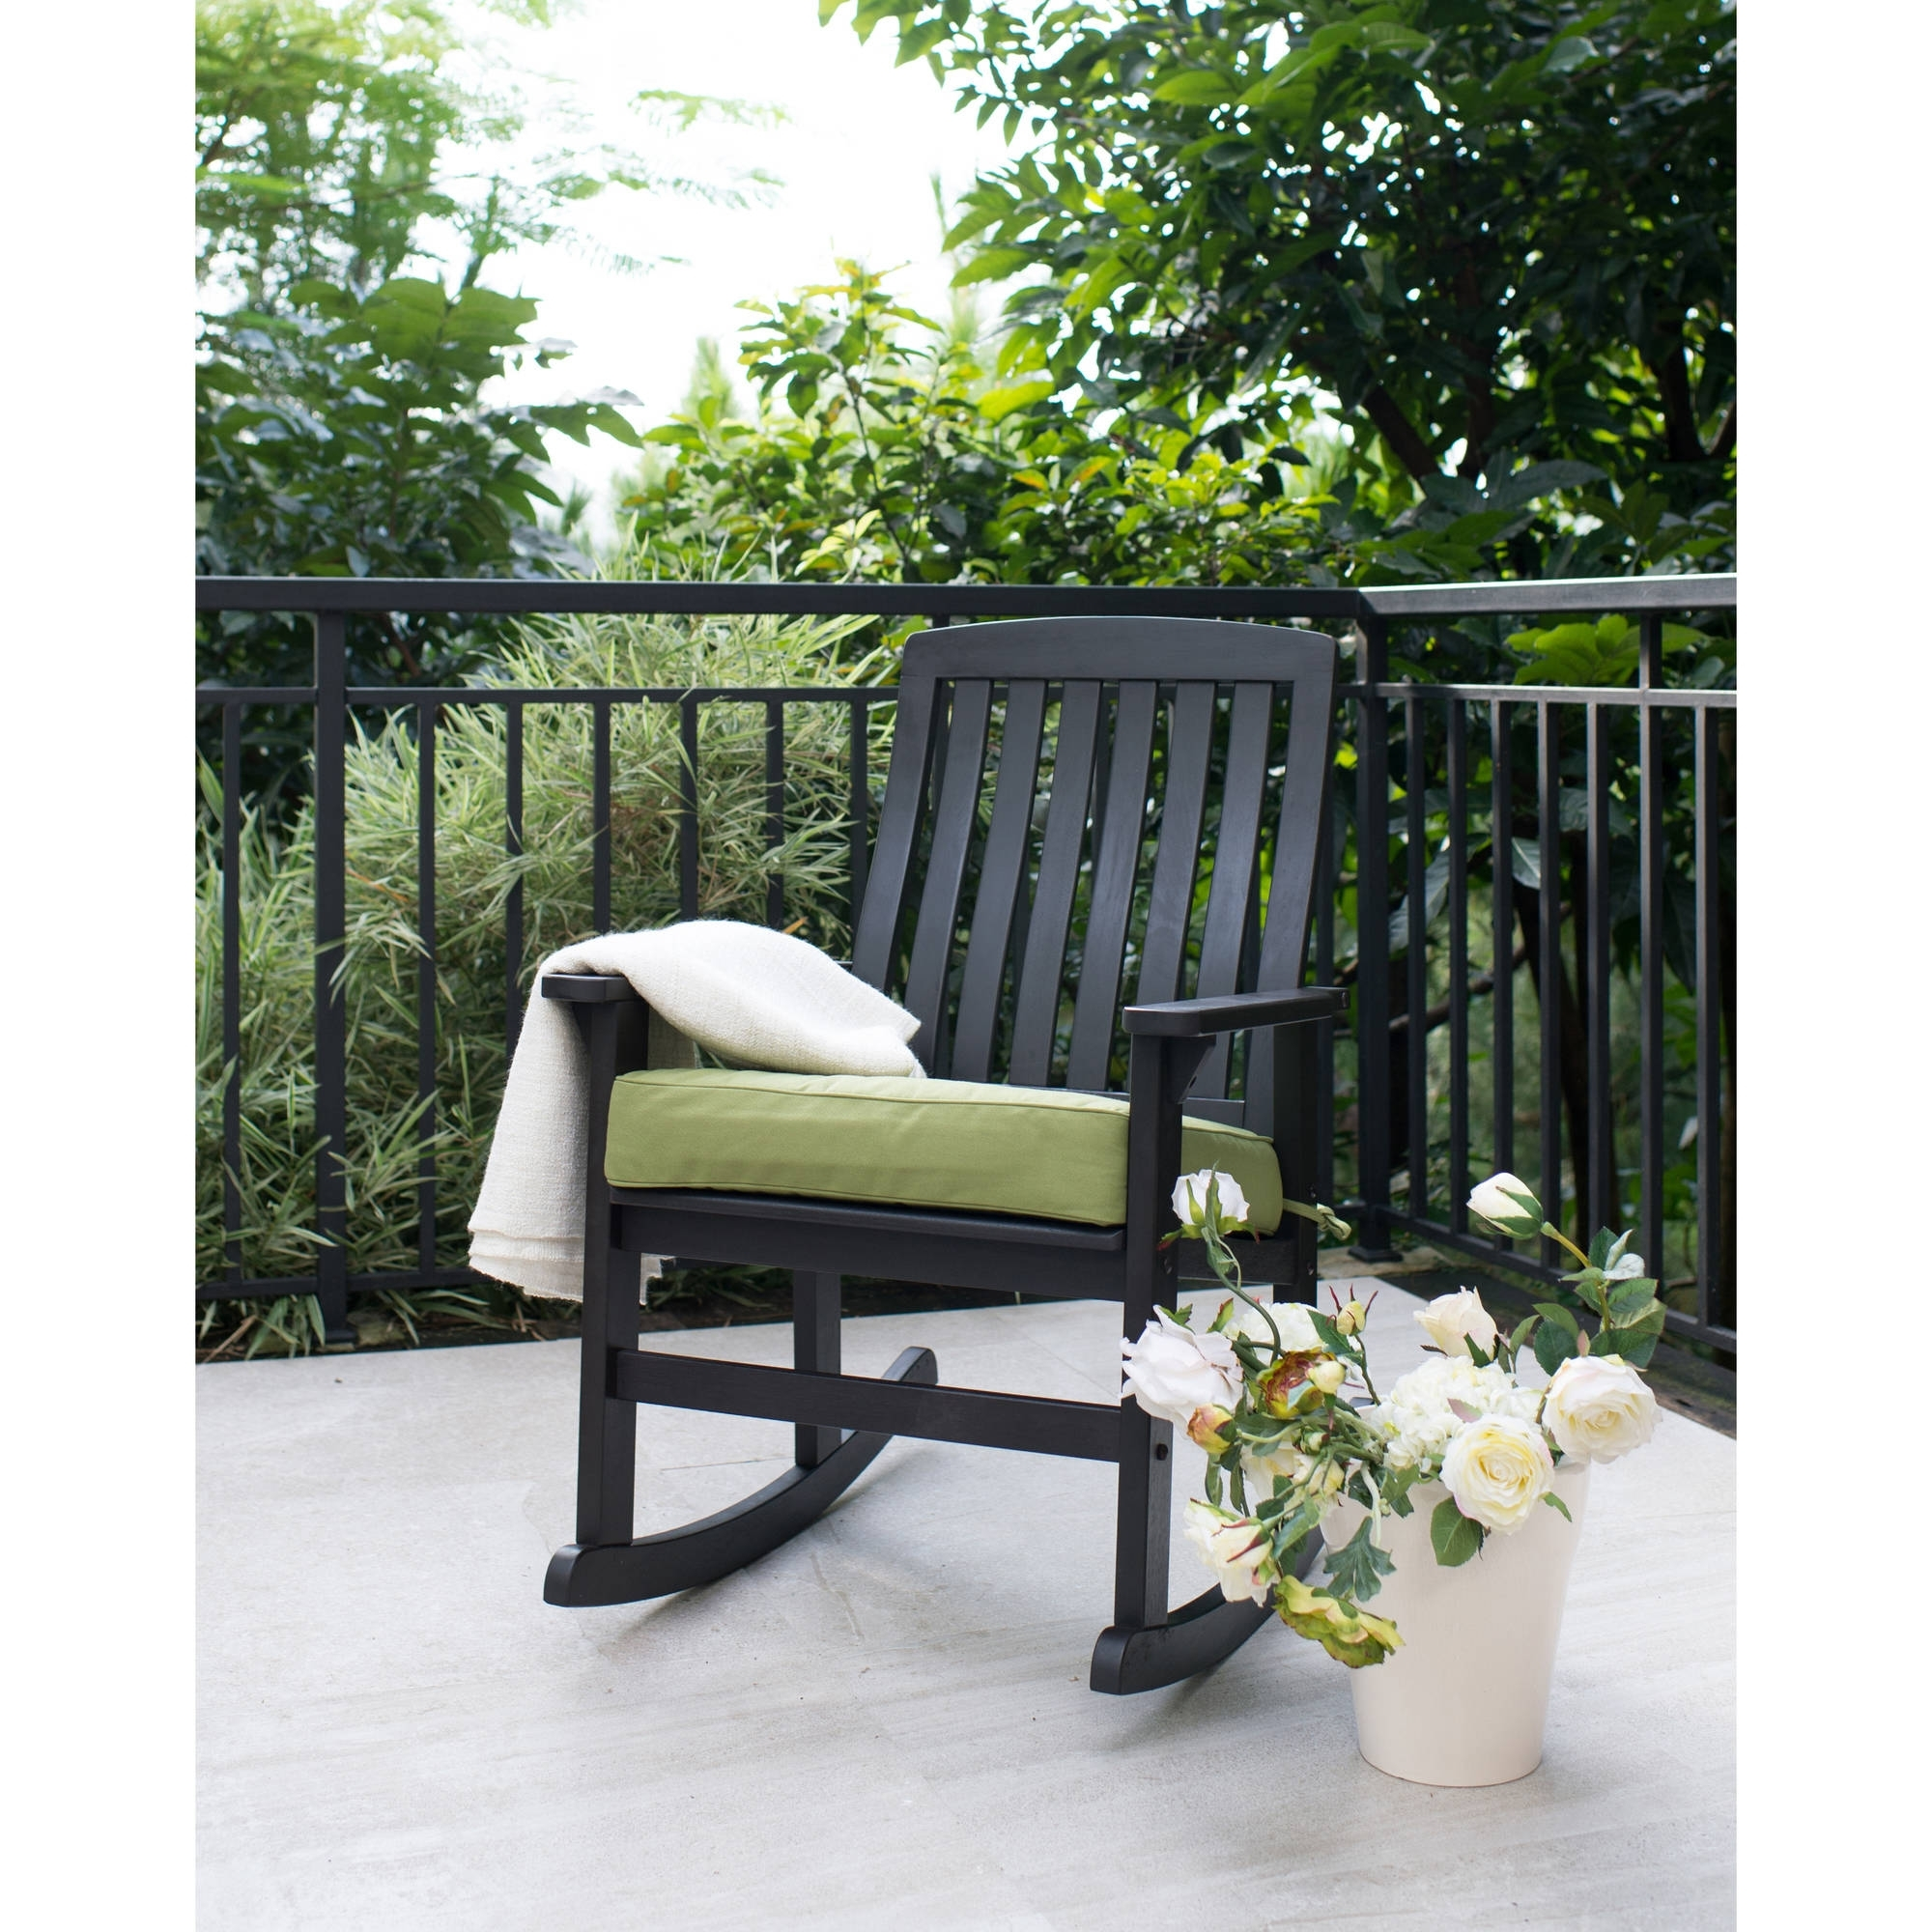 Rocking Chairs At Walmart Regarding Well Liked Better Homes & Gardens Delahey Wood Porch Rocking Chair, Black (View 15 of 15)